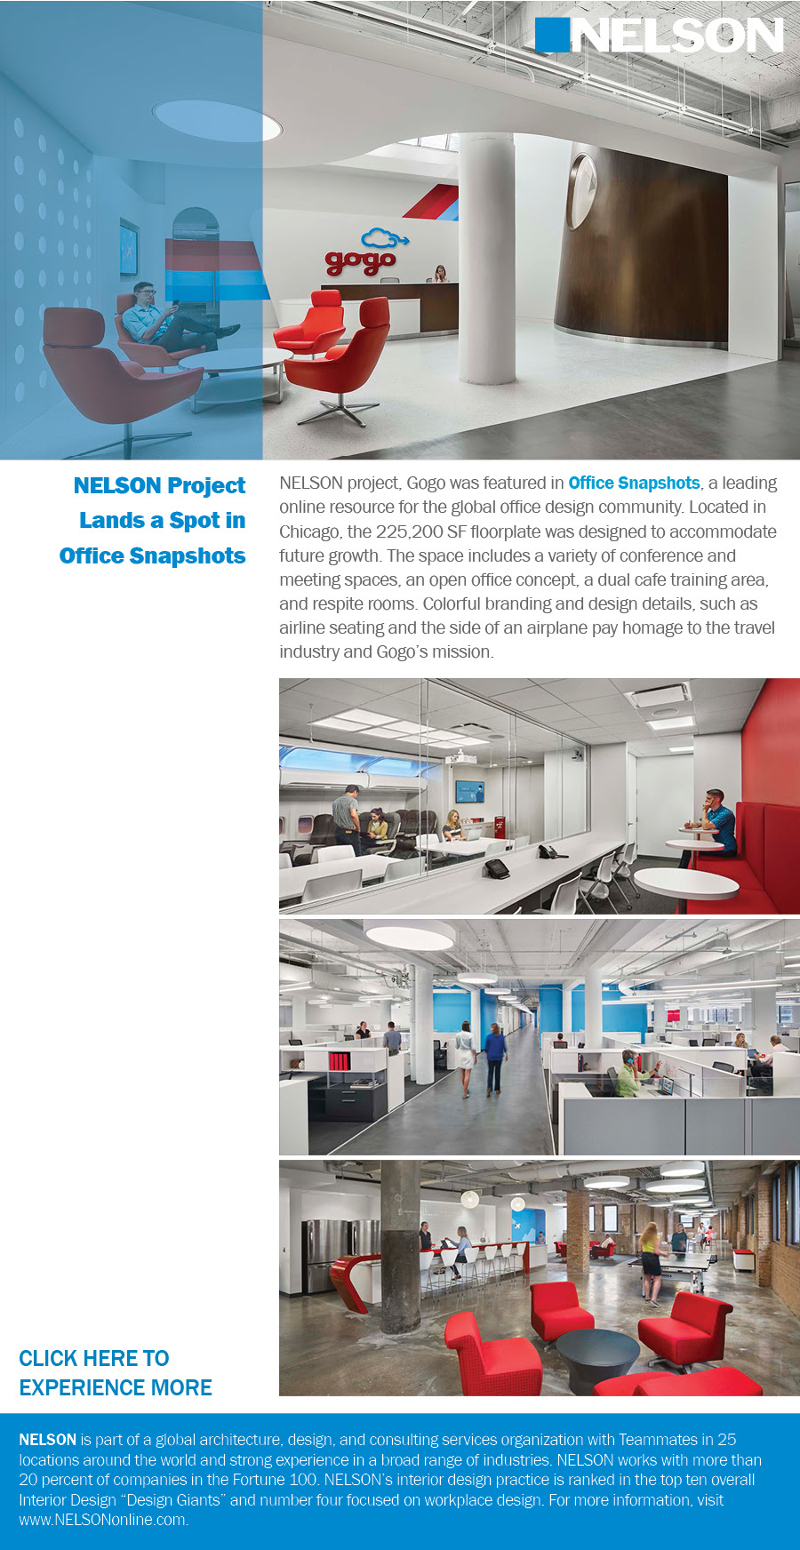 NELSON Project Lands a Spot in Office Snapshots